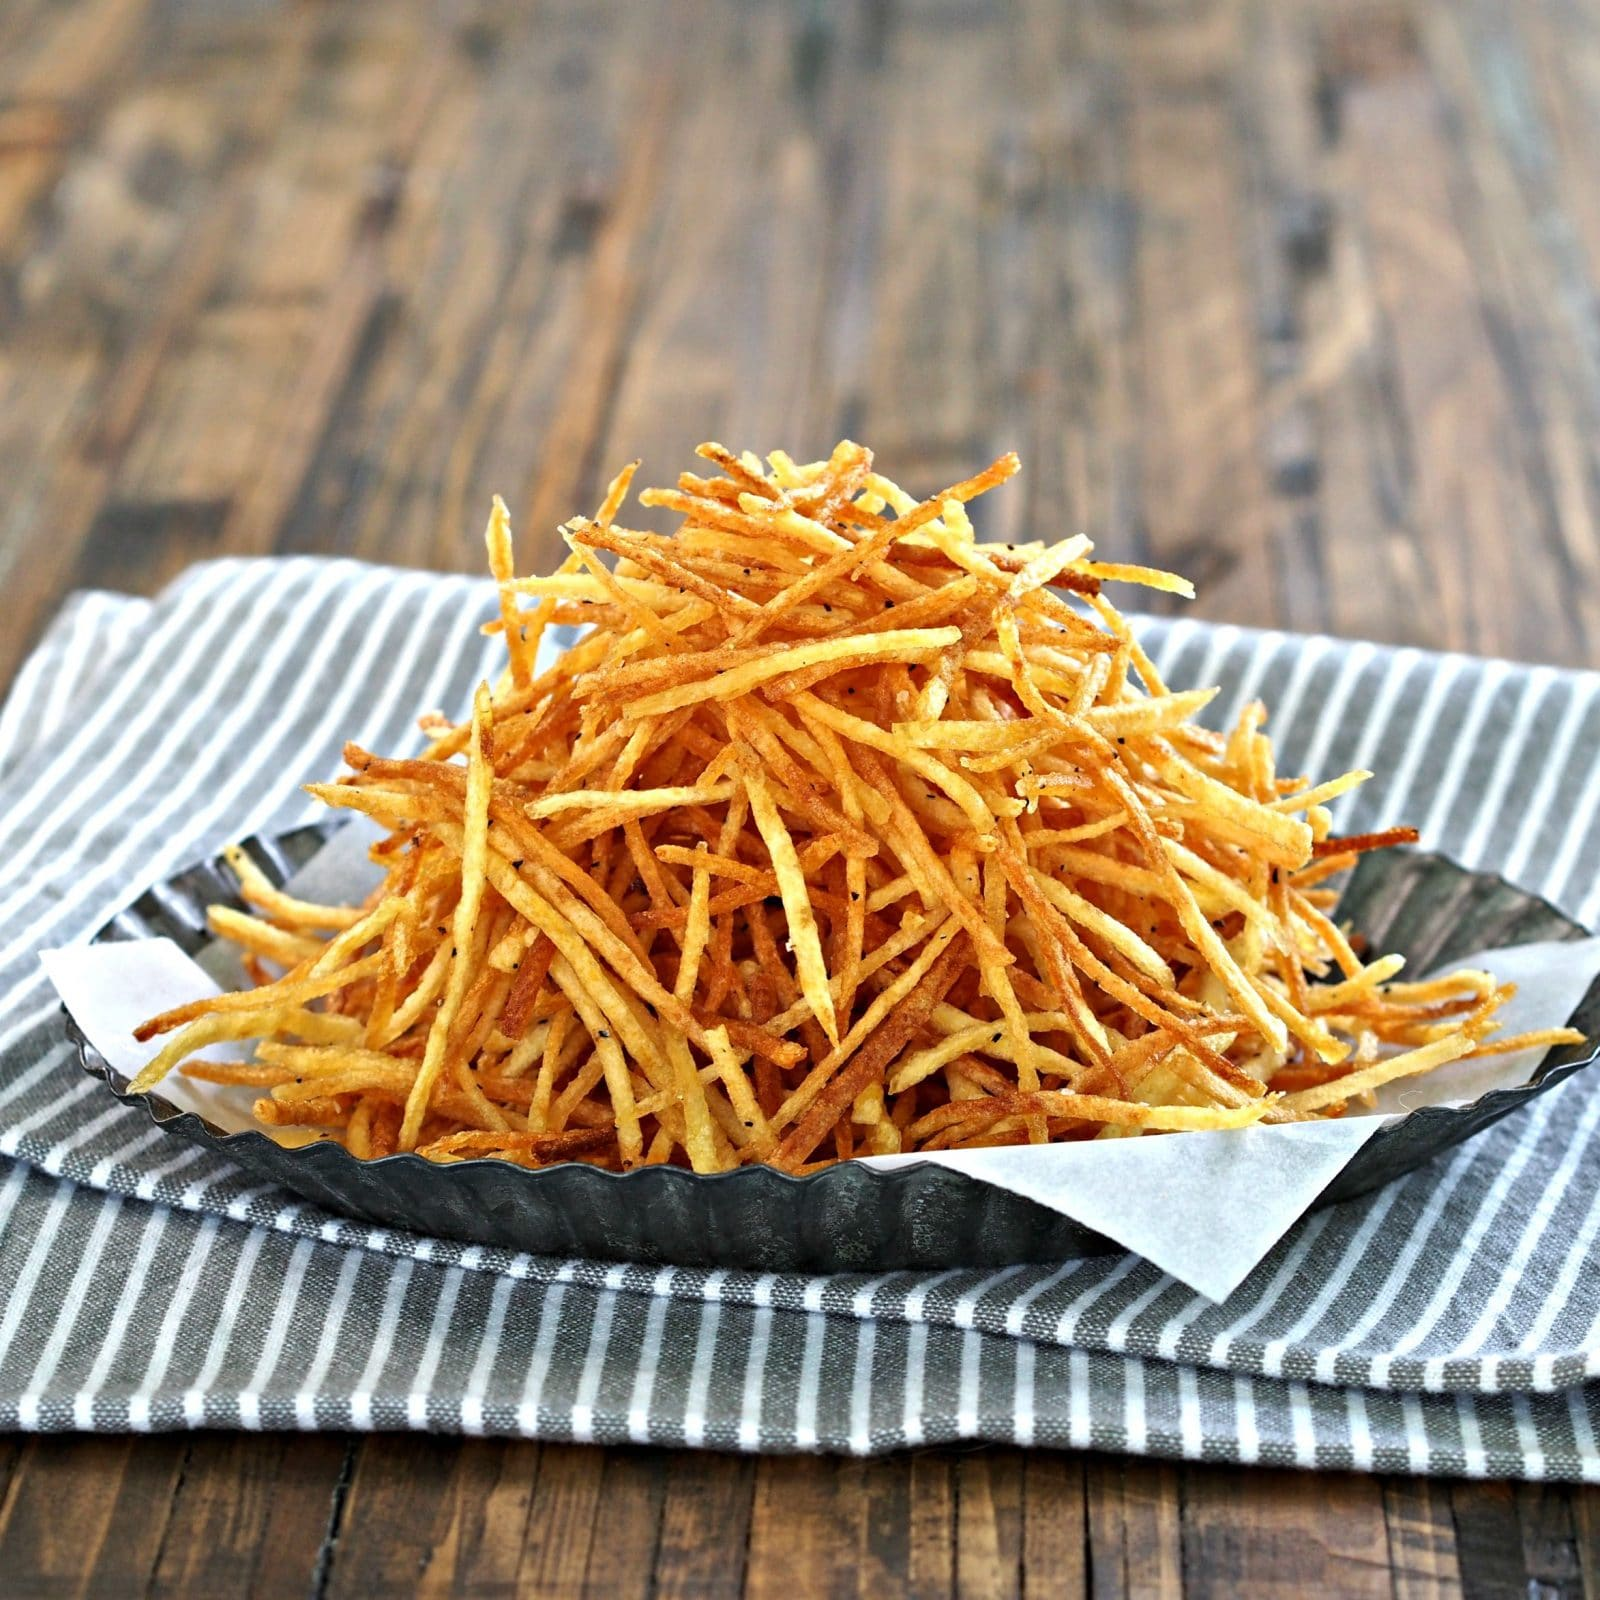 Crispy Crunchy Shoestring Potatoes - Simply Sated